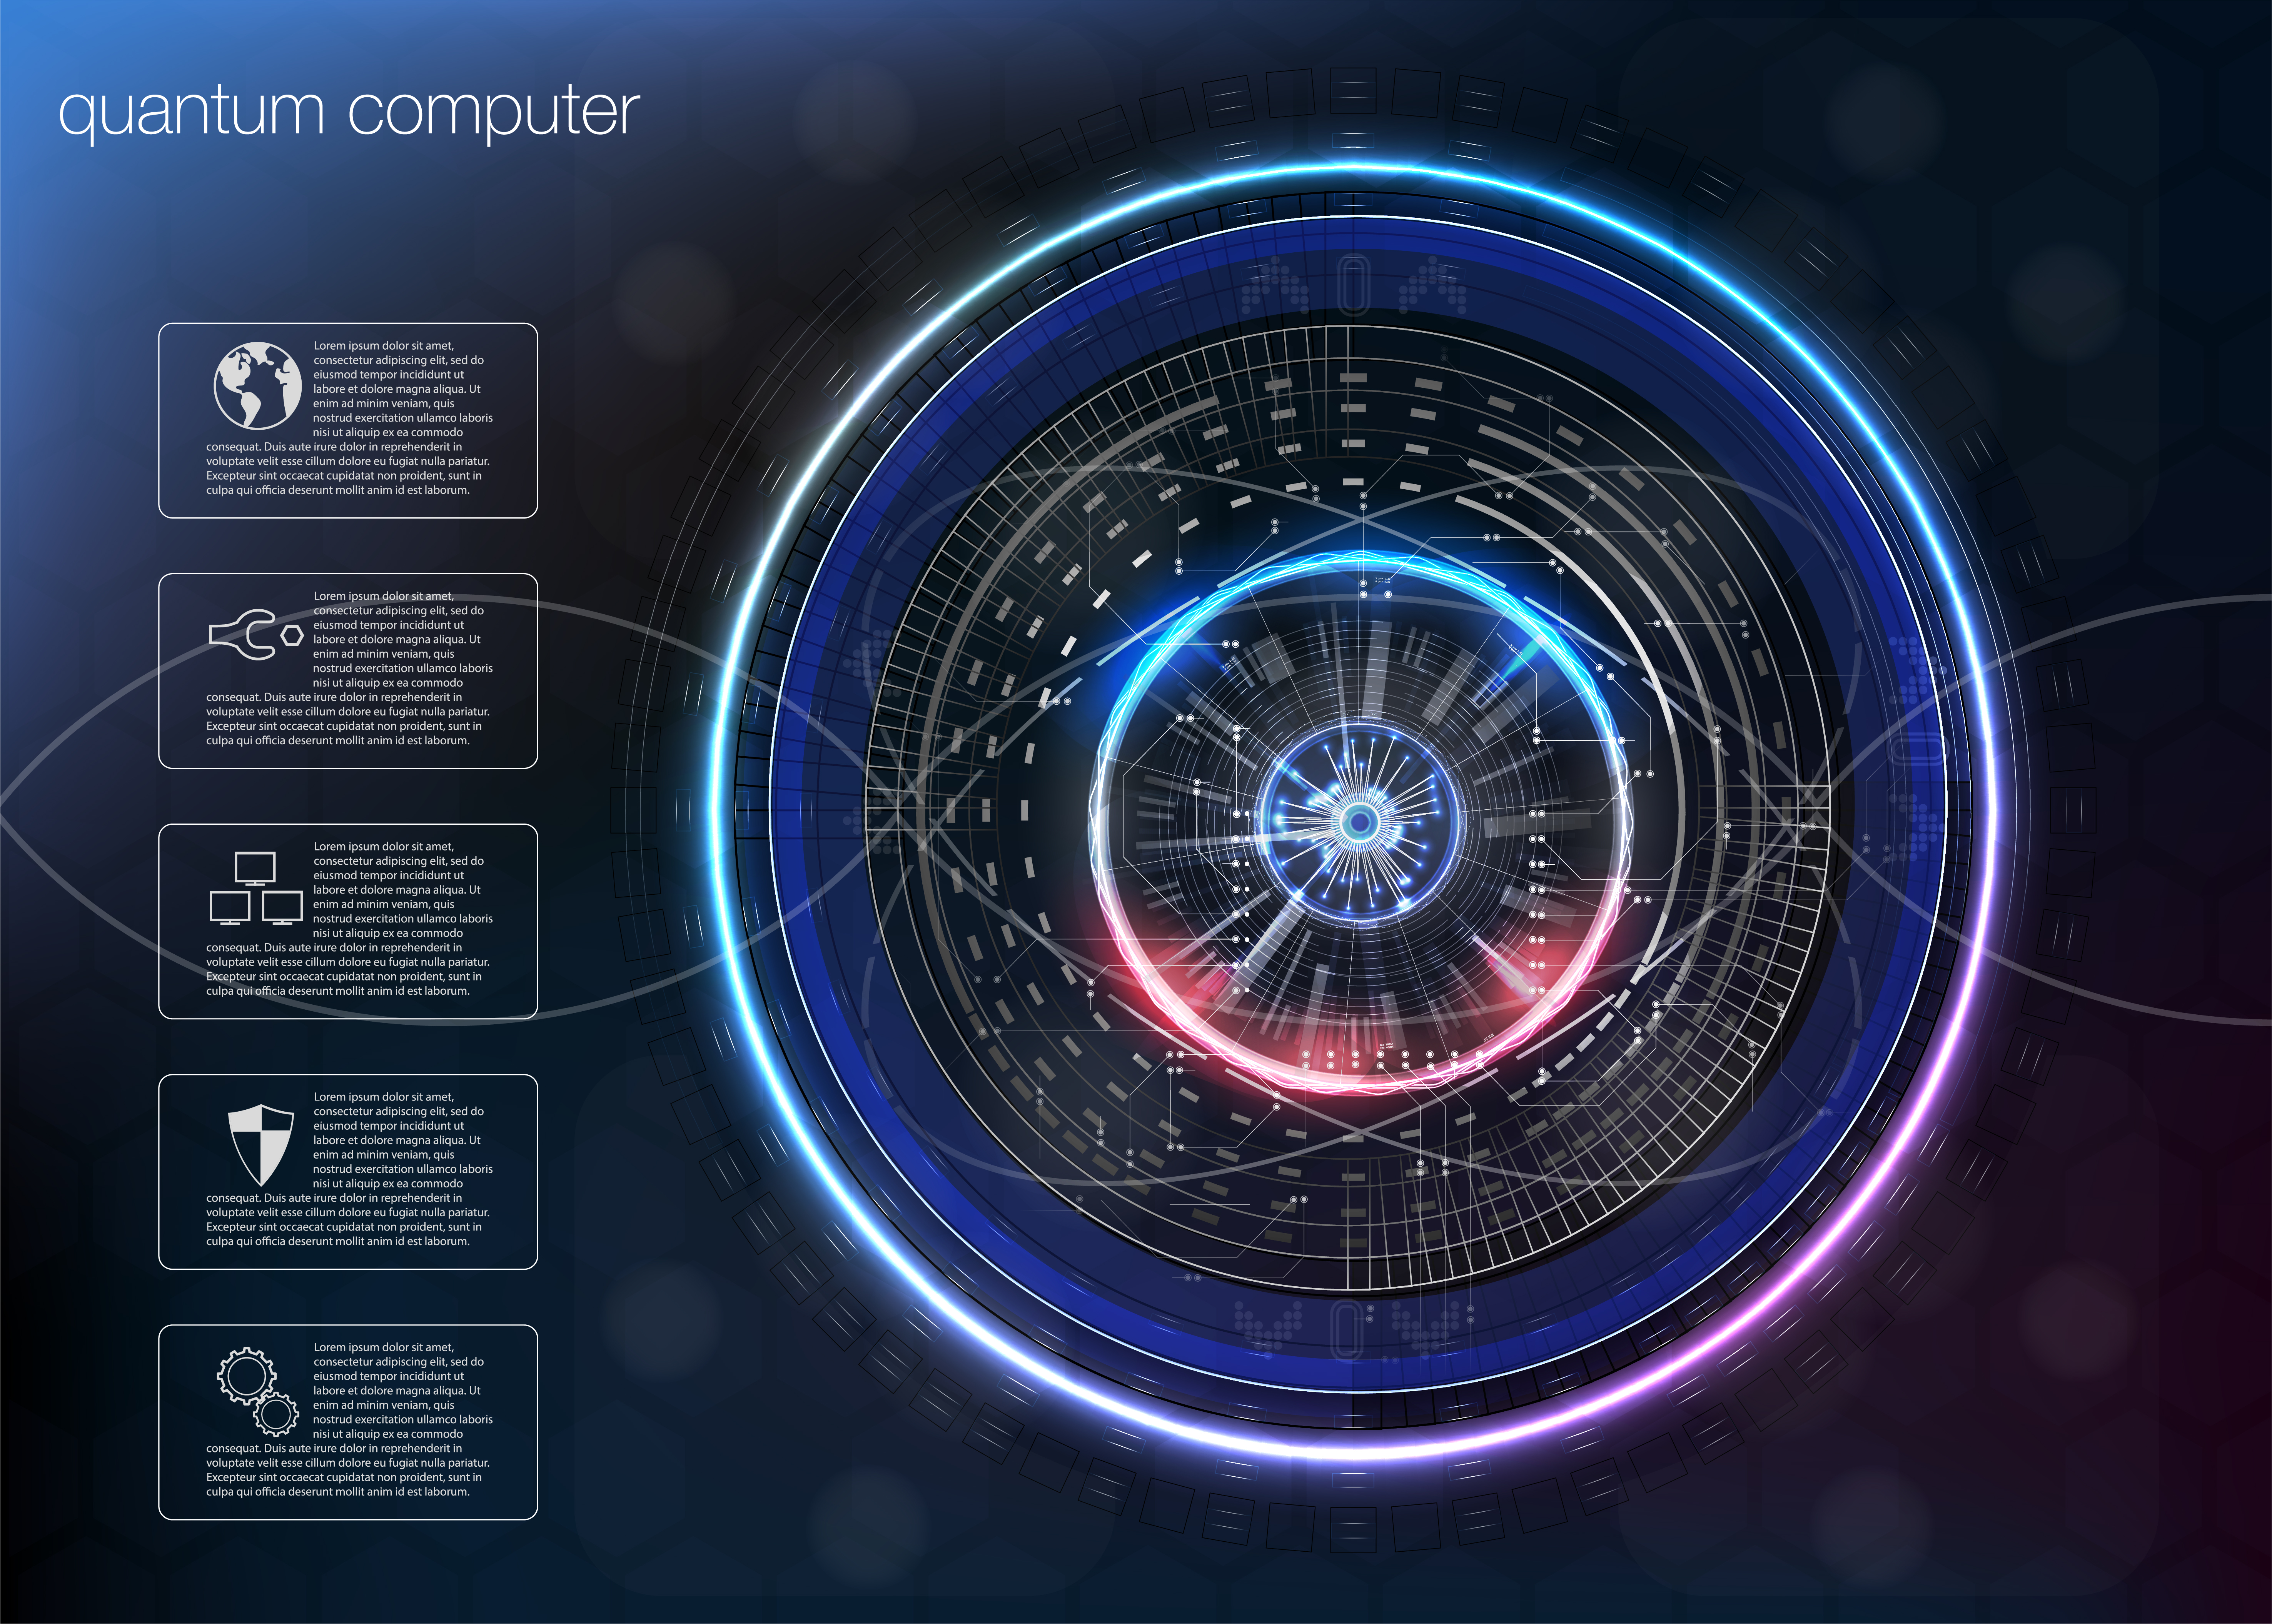 Quantum computing, Big data algorithms, Quantum computing, data visualization technologies, deep learning artificial intelligence, signal cryptography infographic vector illustrations.